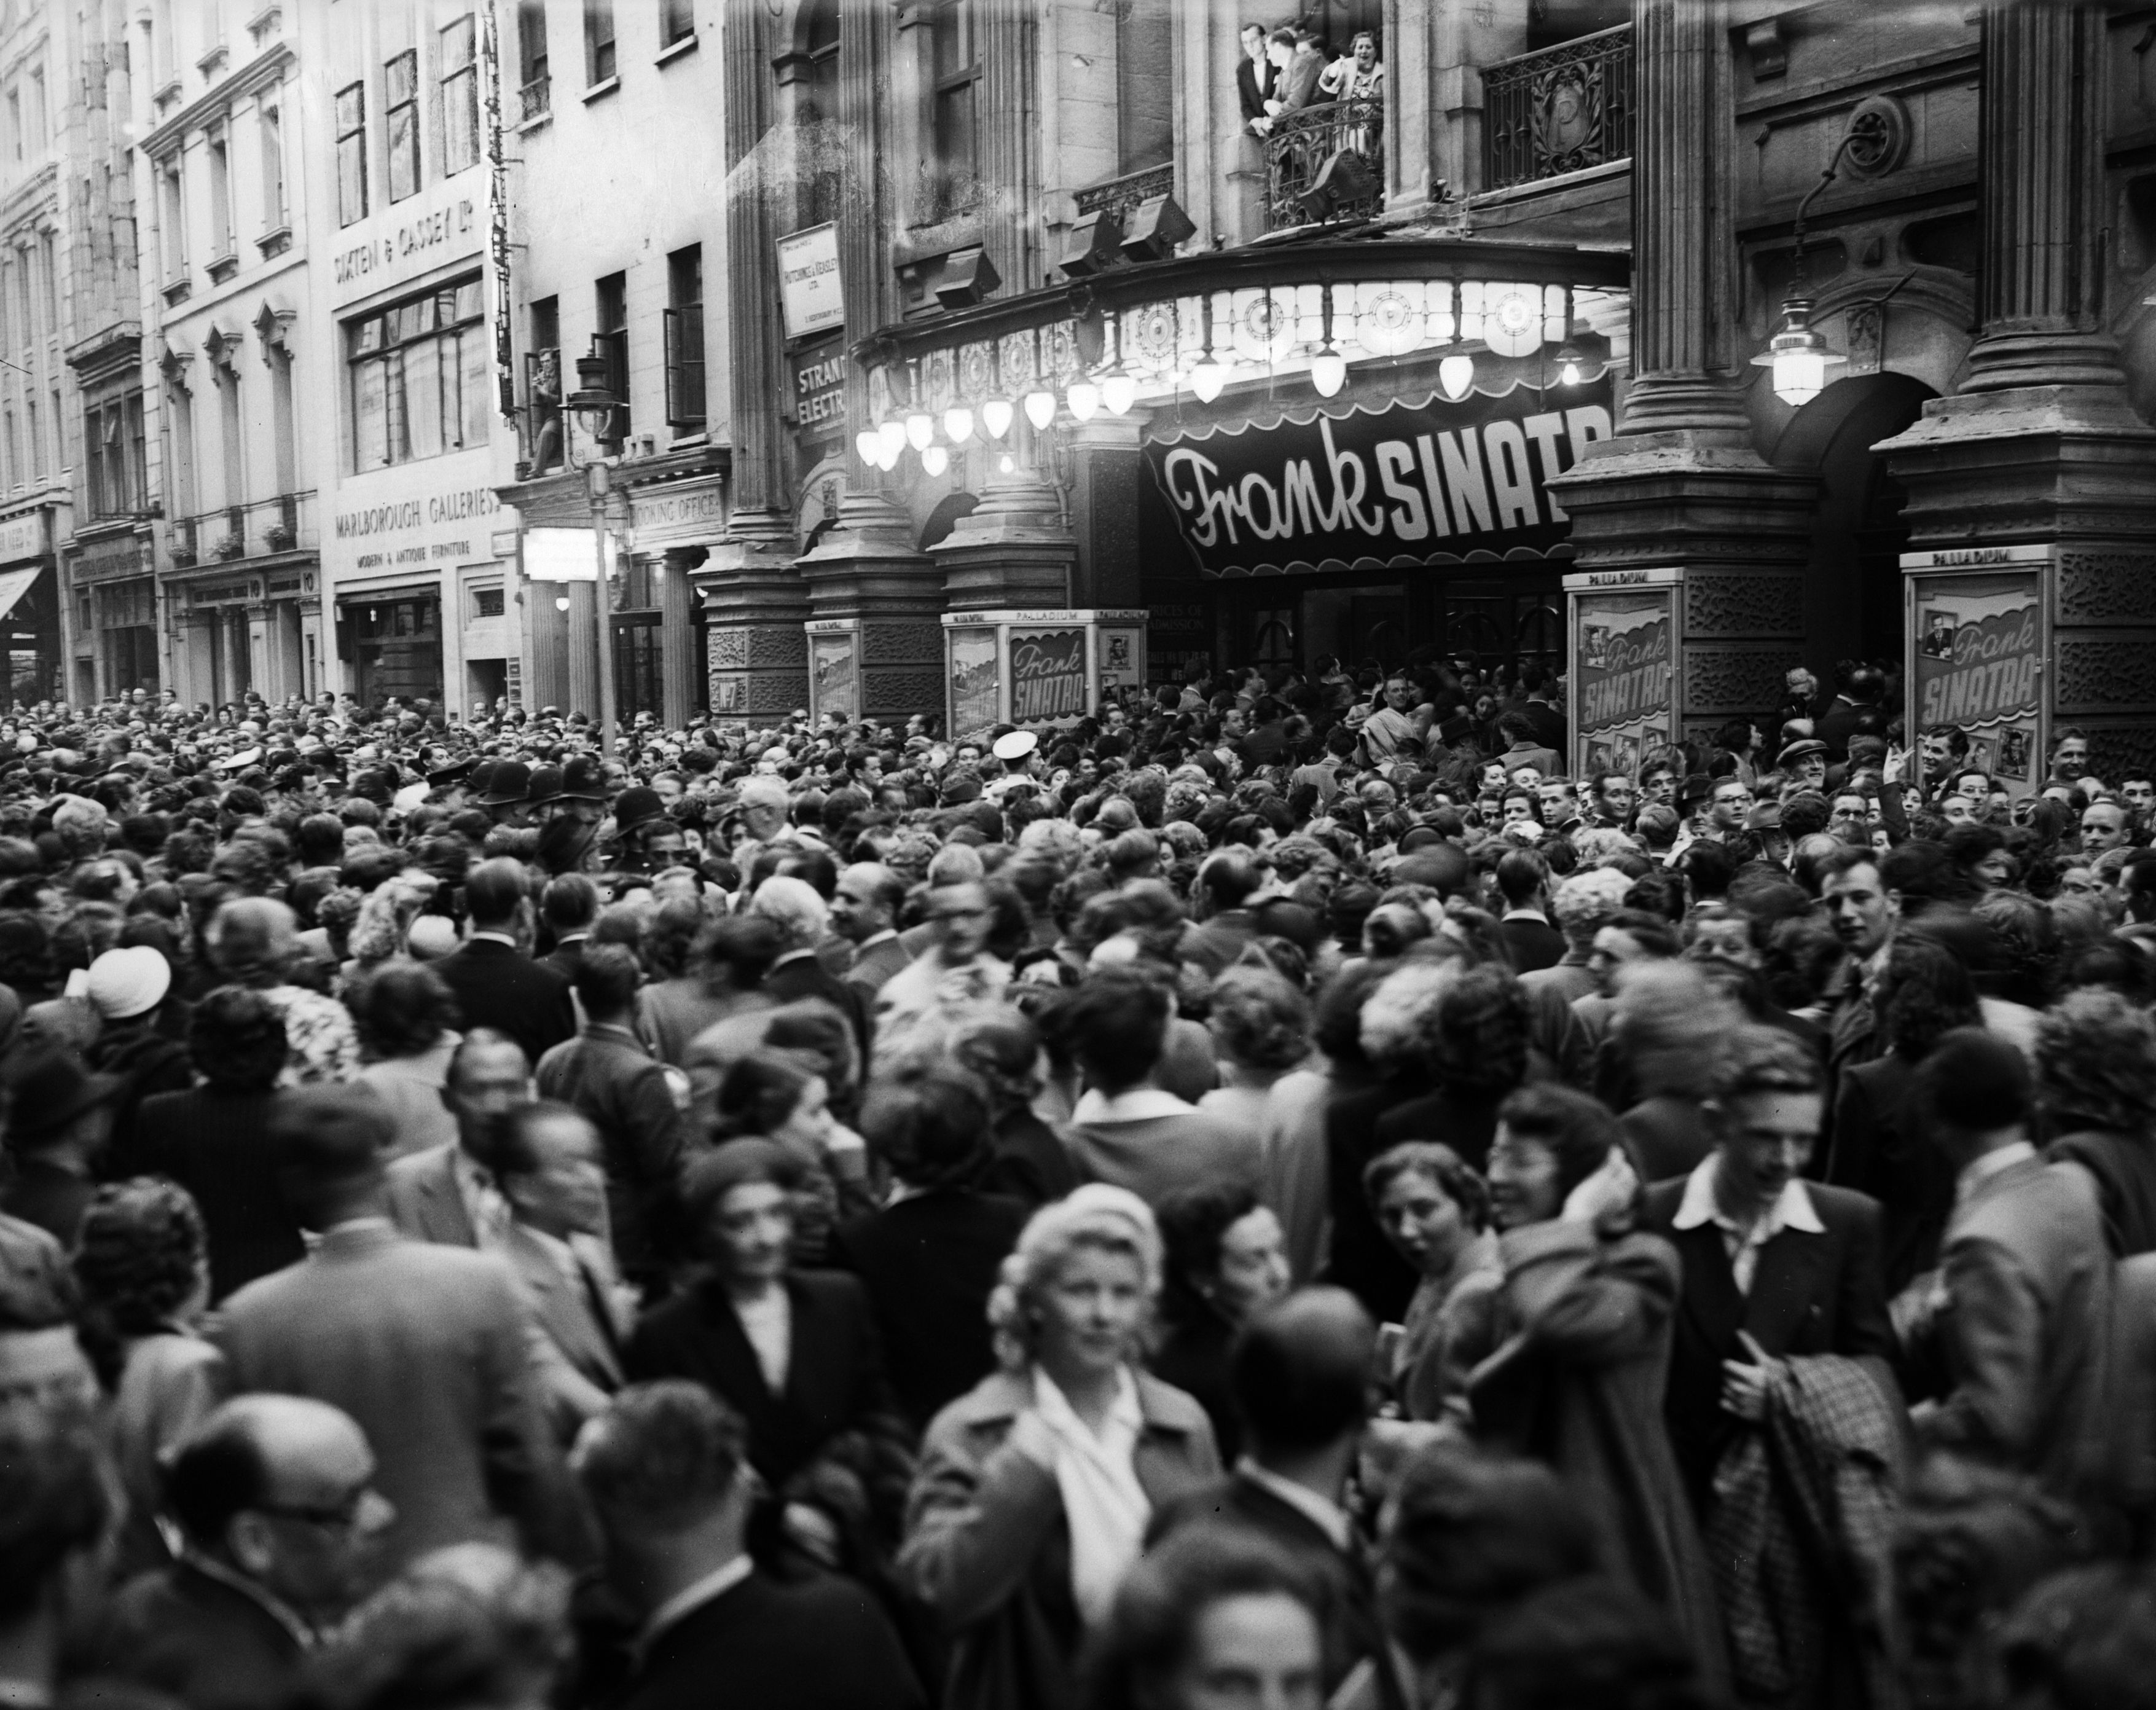 11th July 1950: Crowds waiting outside the Palladium, London, hoping to catch a glimpse of Frank Sinatra who is performing there. (Photo by Stroud/Express/Getty Images)